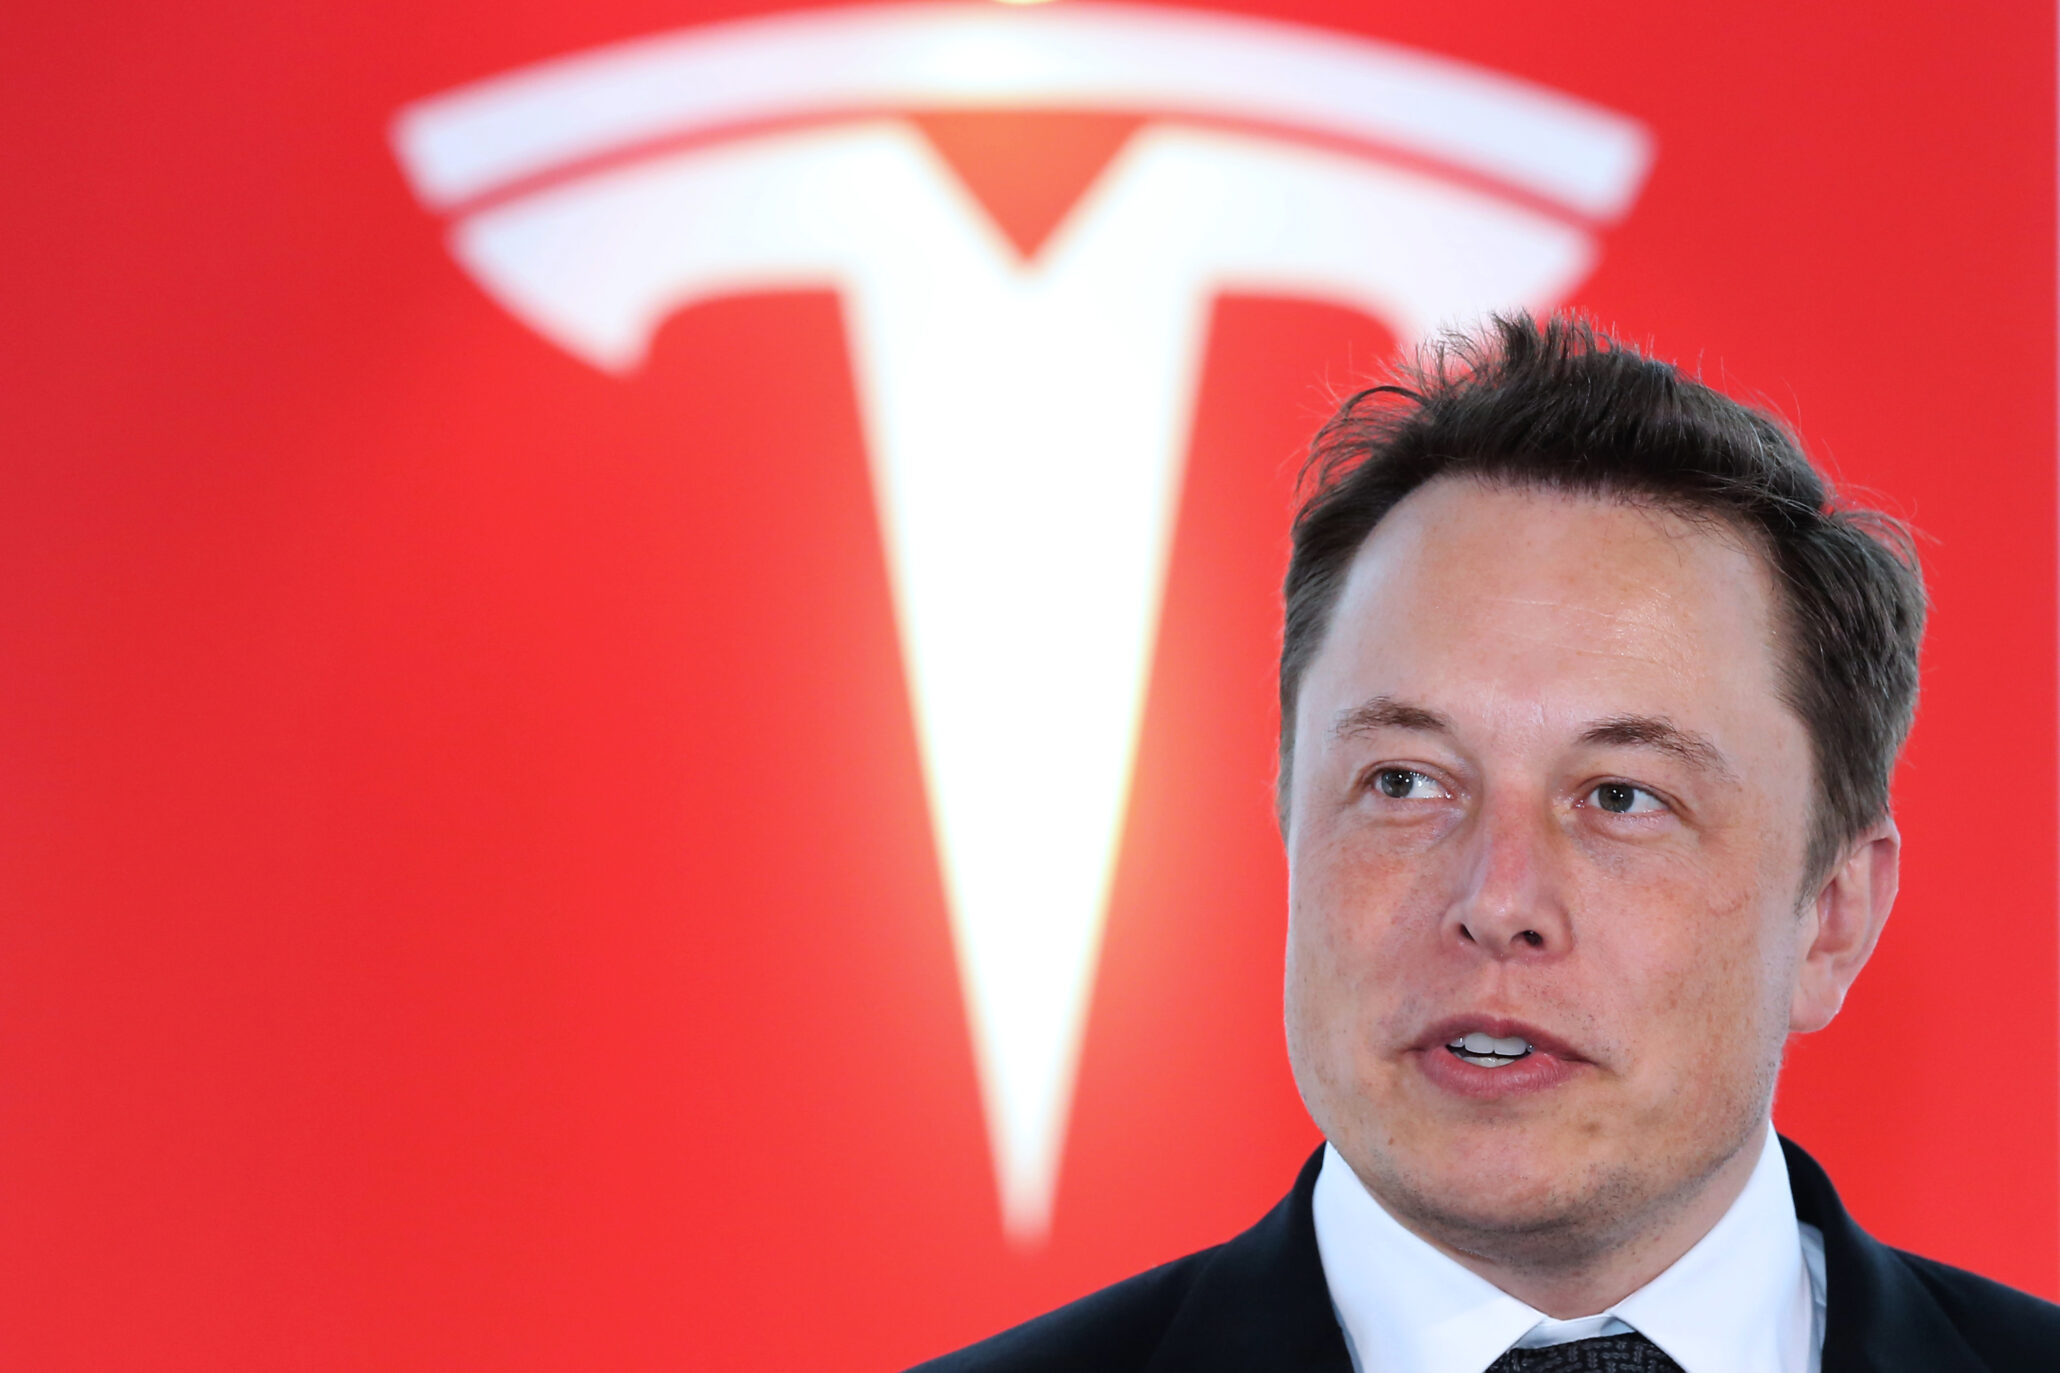 Musk Tesla The Elon Musk Is Staying Tesla Meets Ambitious Model 3 Production